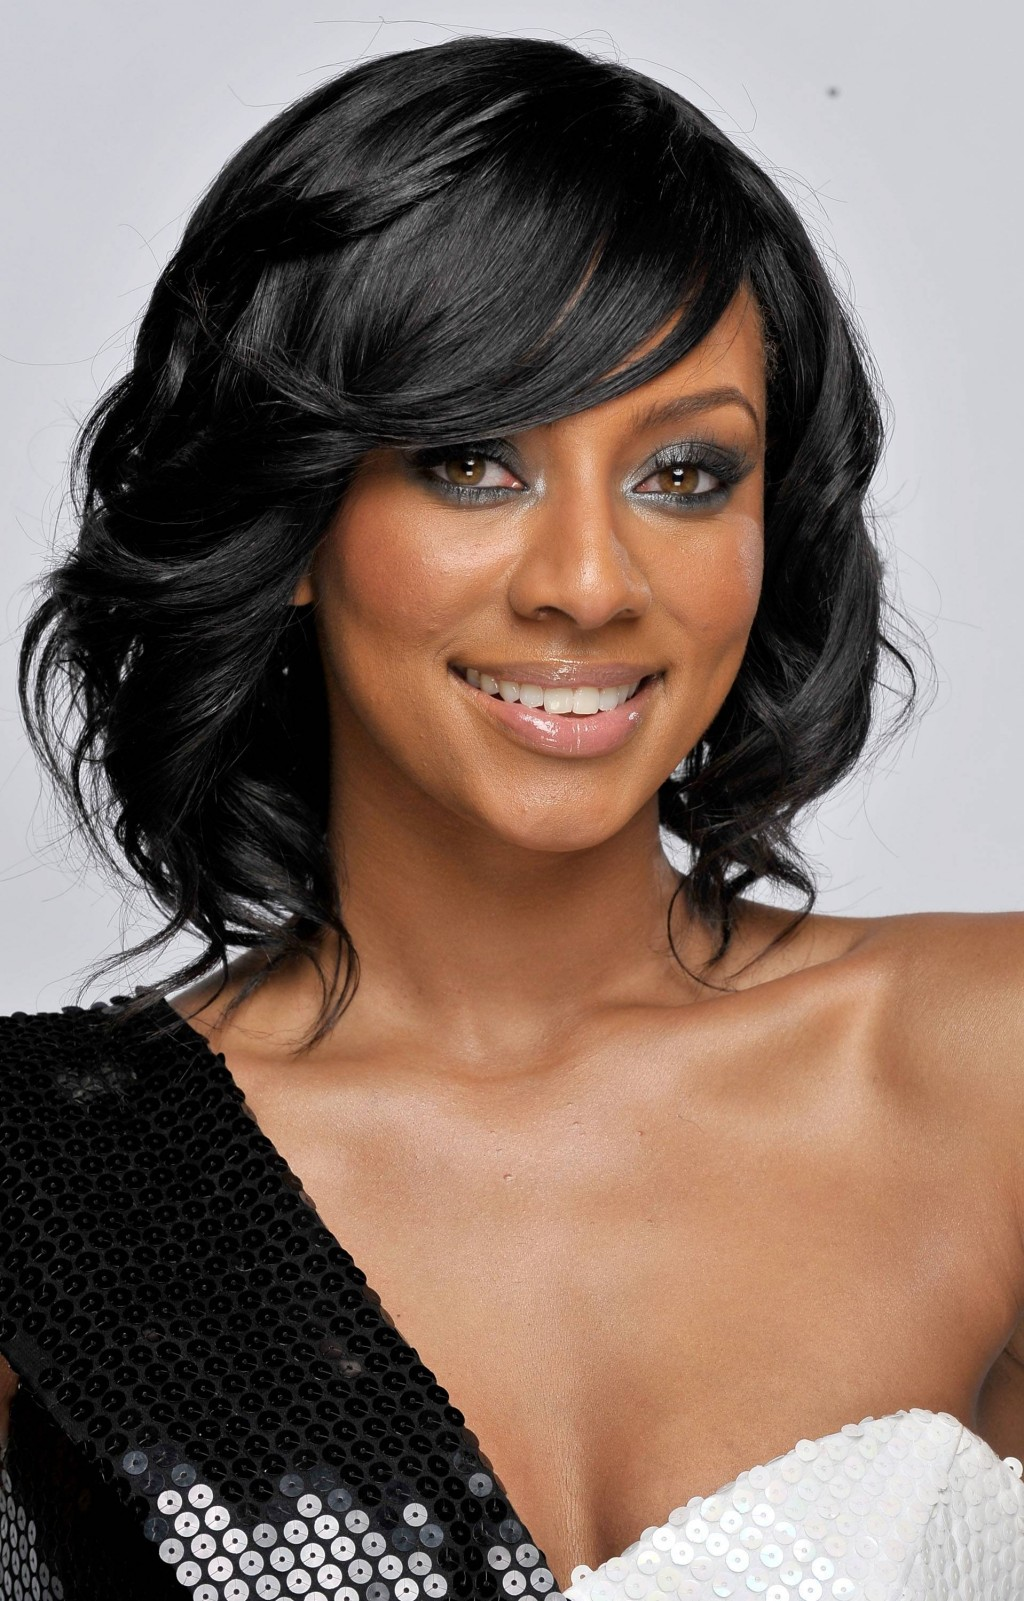 Hair Style , 10 Unique Short Black Styles : Short Black Hair Cuts